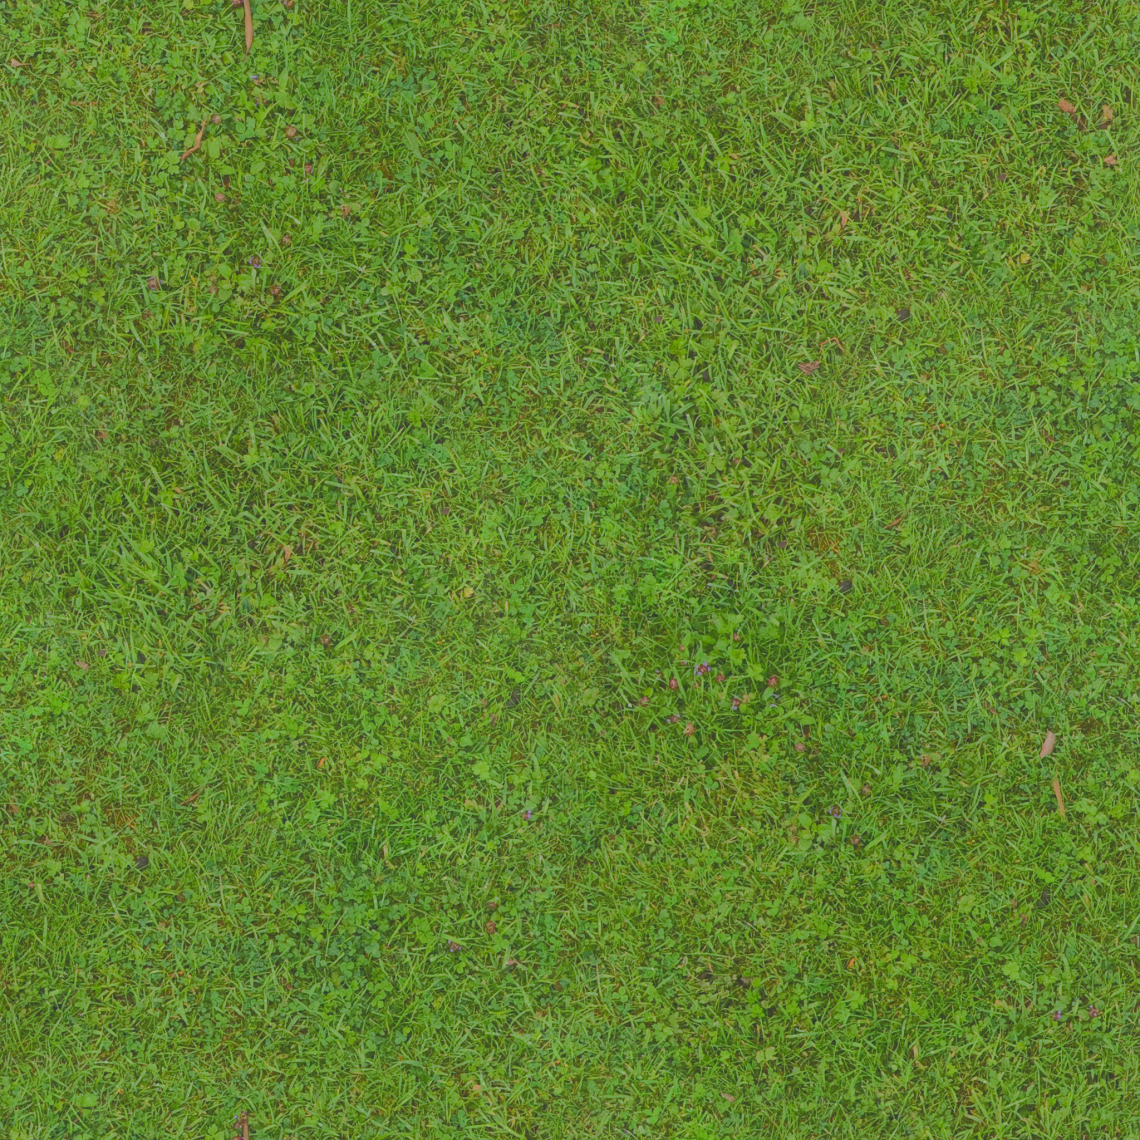 Grass Green 01 Albedo Good Textures